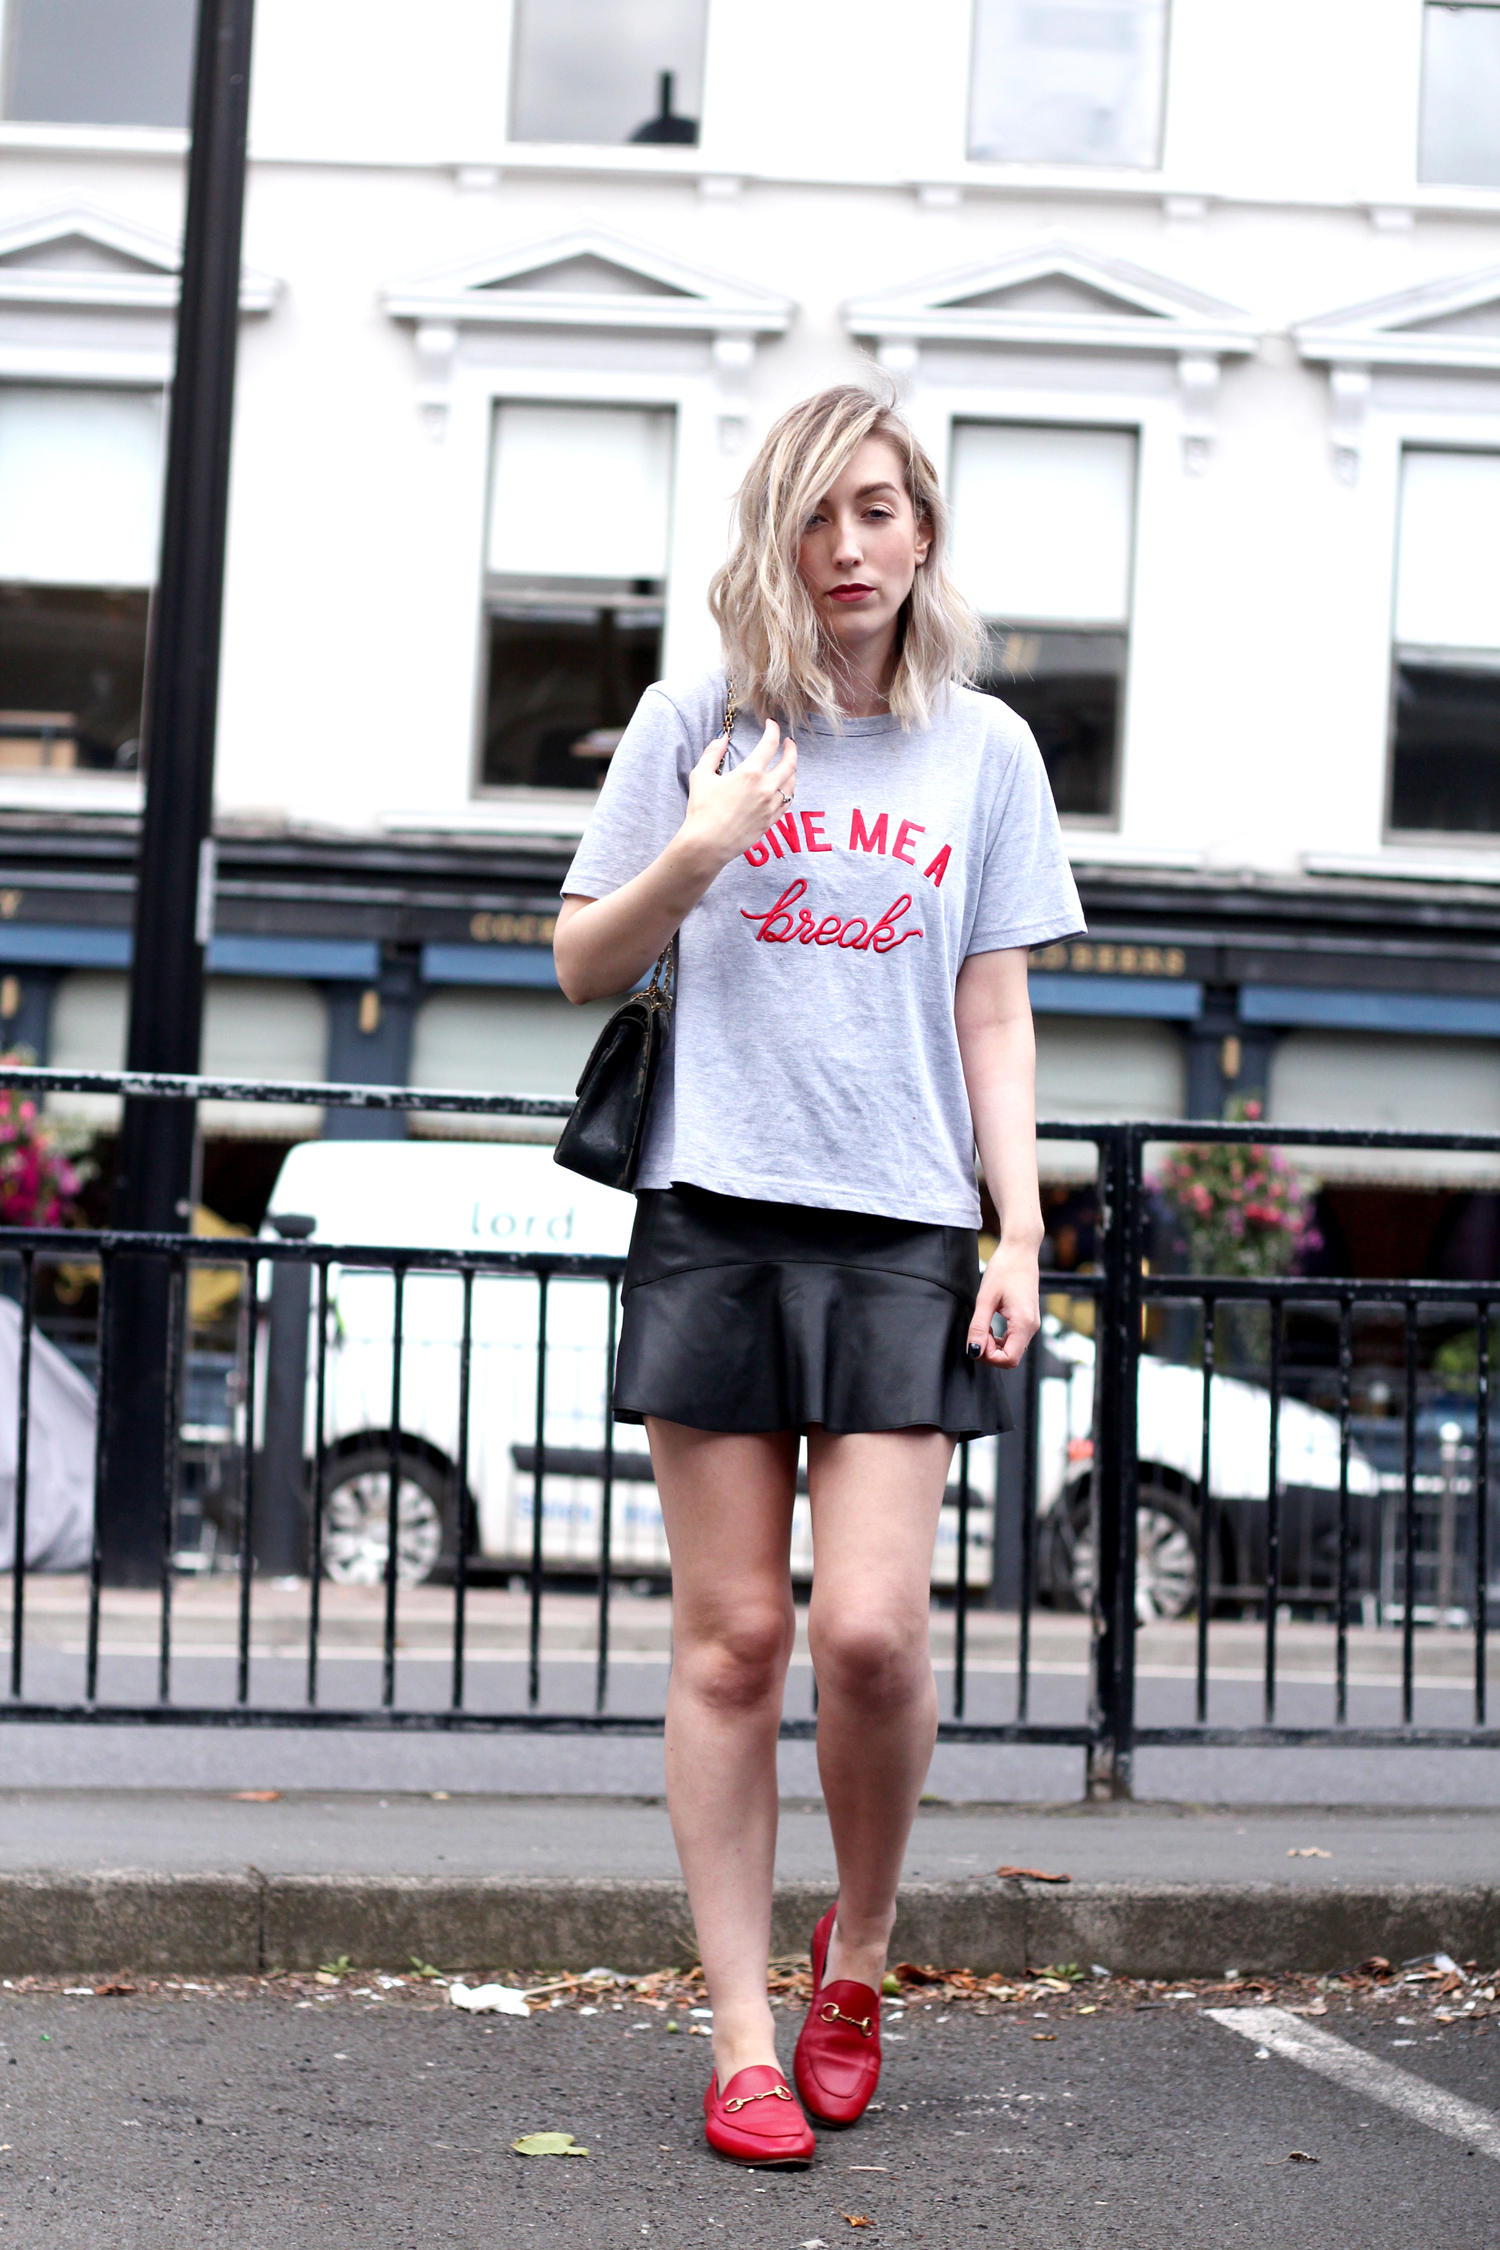 pretty-little-thing-give-me-a-break-slogan-tshirt-vintage-chanel-1